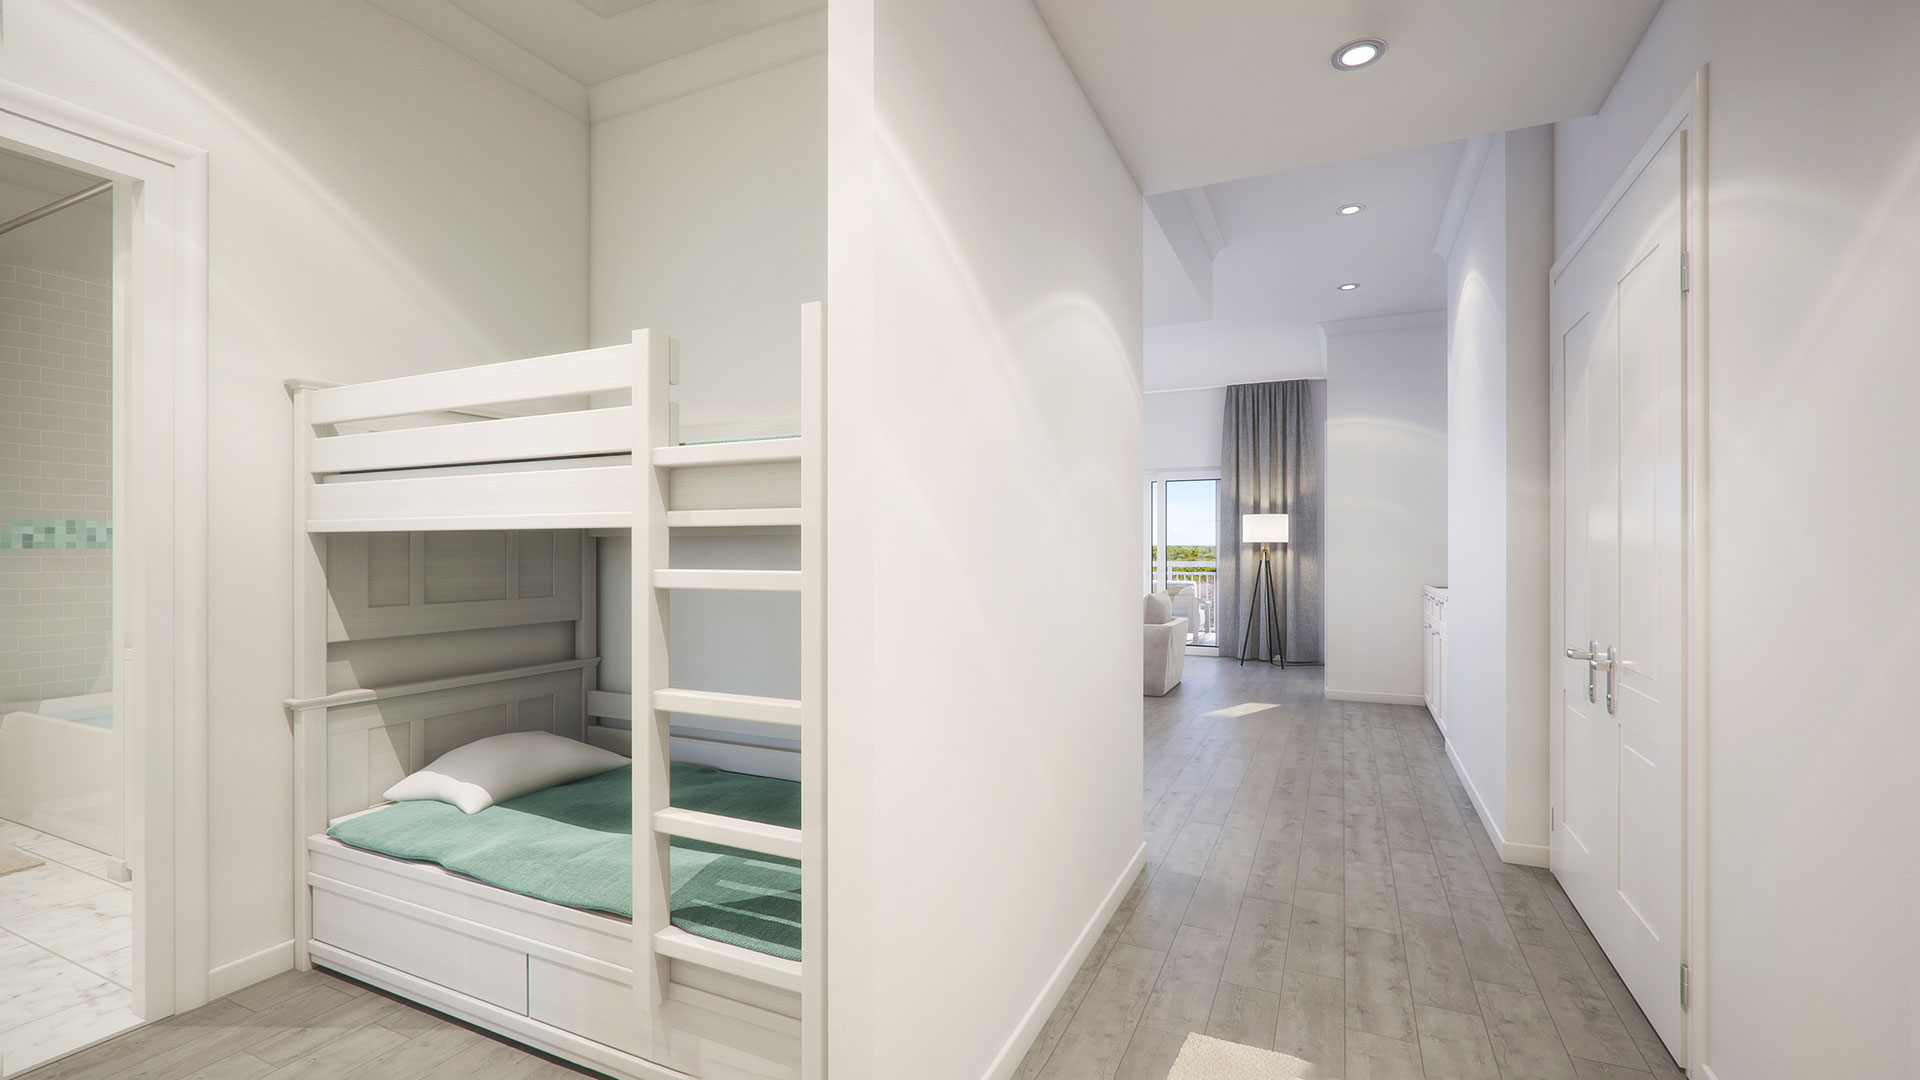 Parkview3 offers 3 bedrooms plus 2 bunks